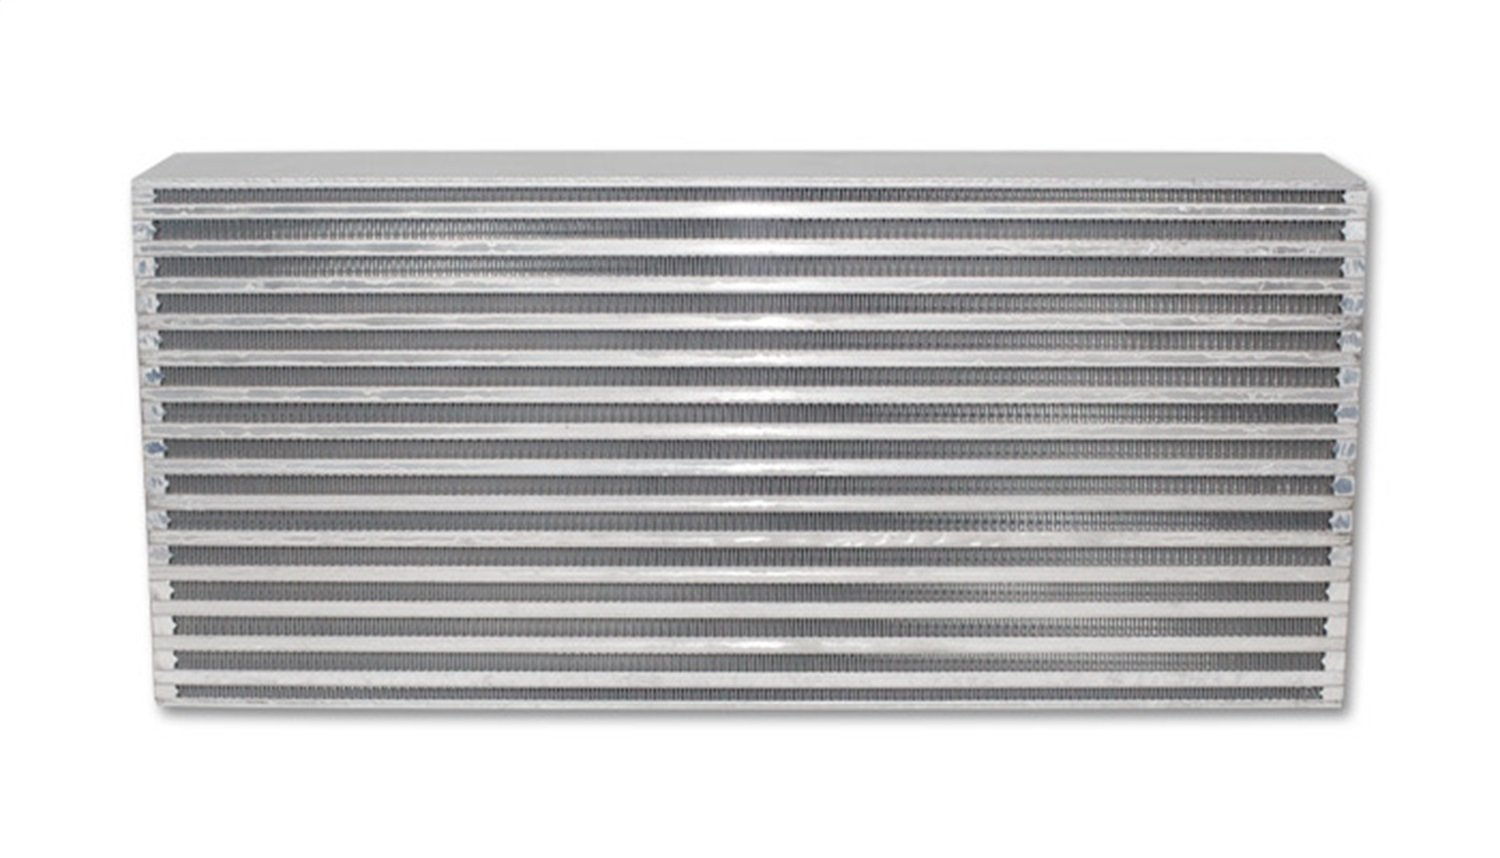 Vibrant 12831 Air-to-Air Intercooler Core Vibrant Performance